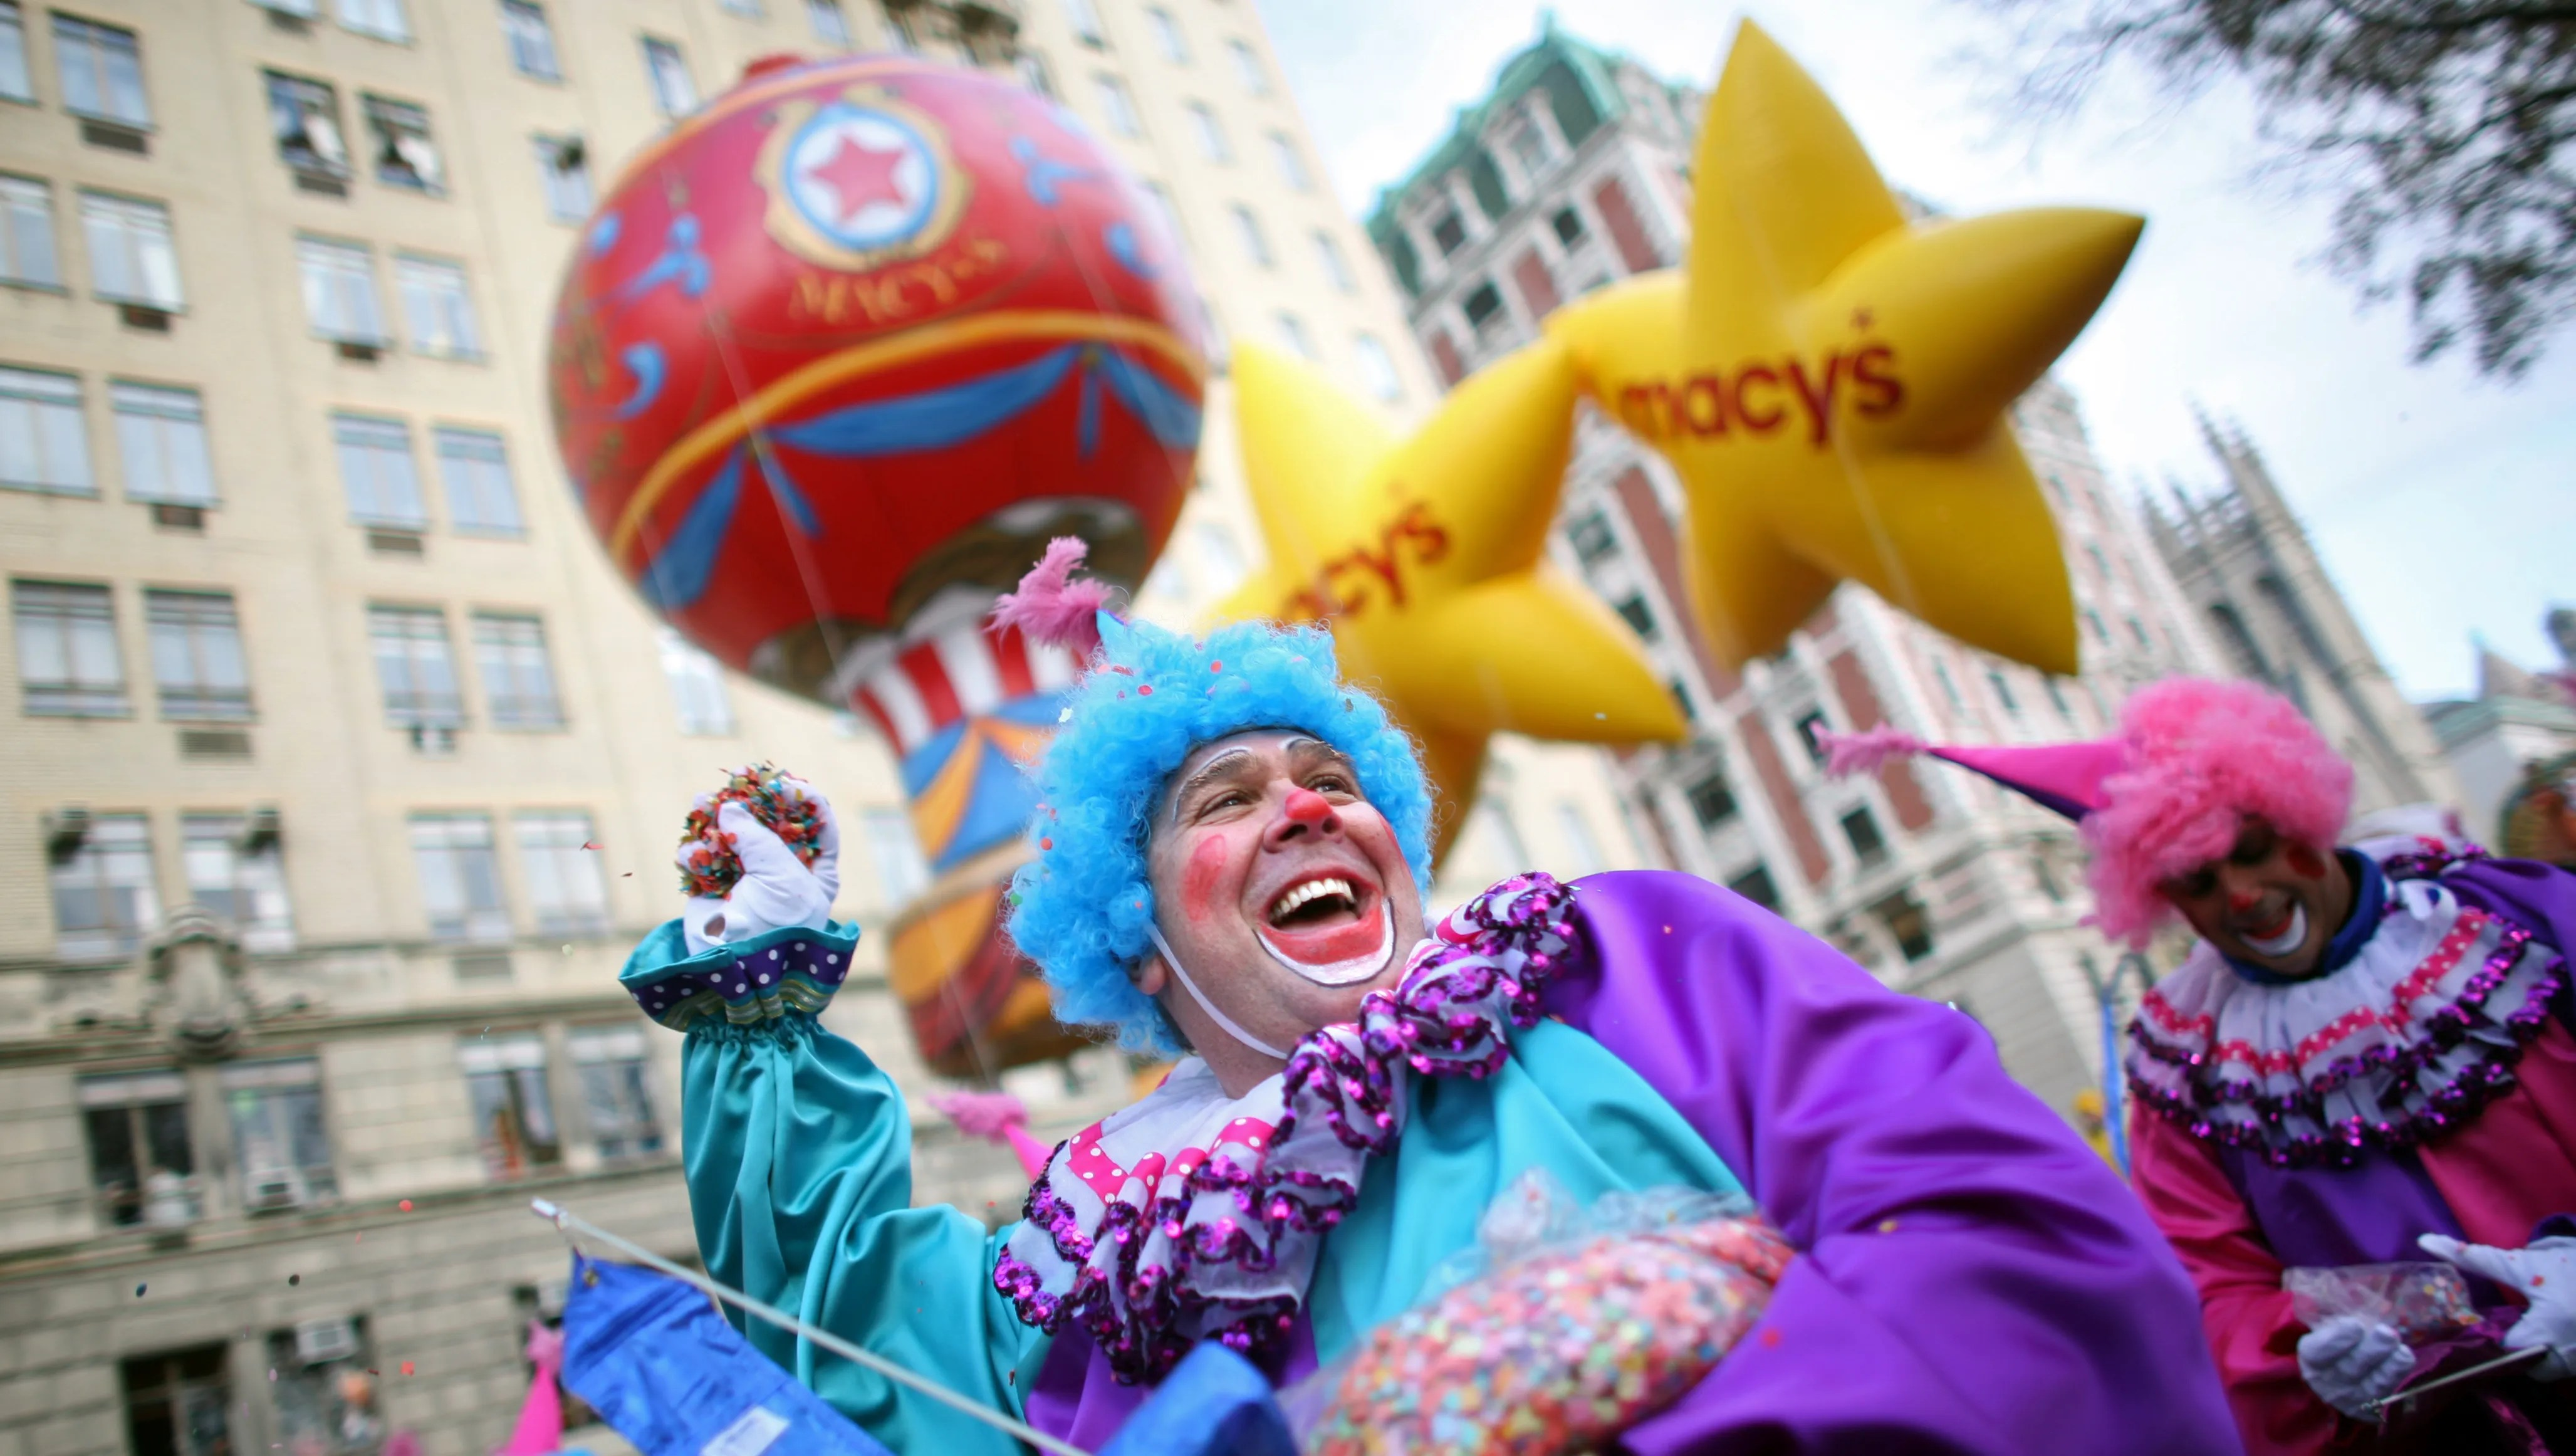 Get a front row seat for Macy's Thanksgiving Day Parade